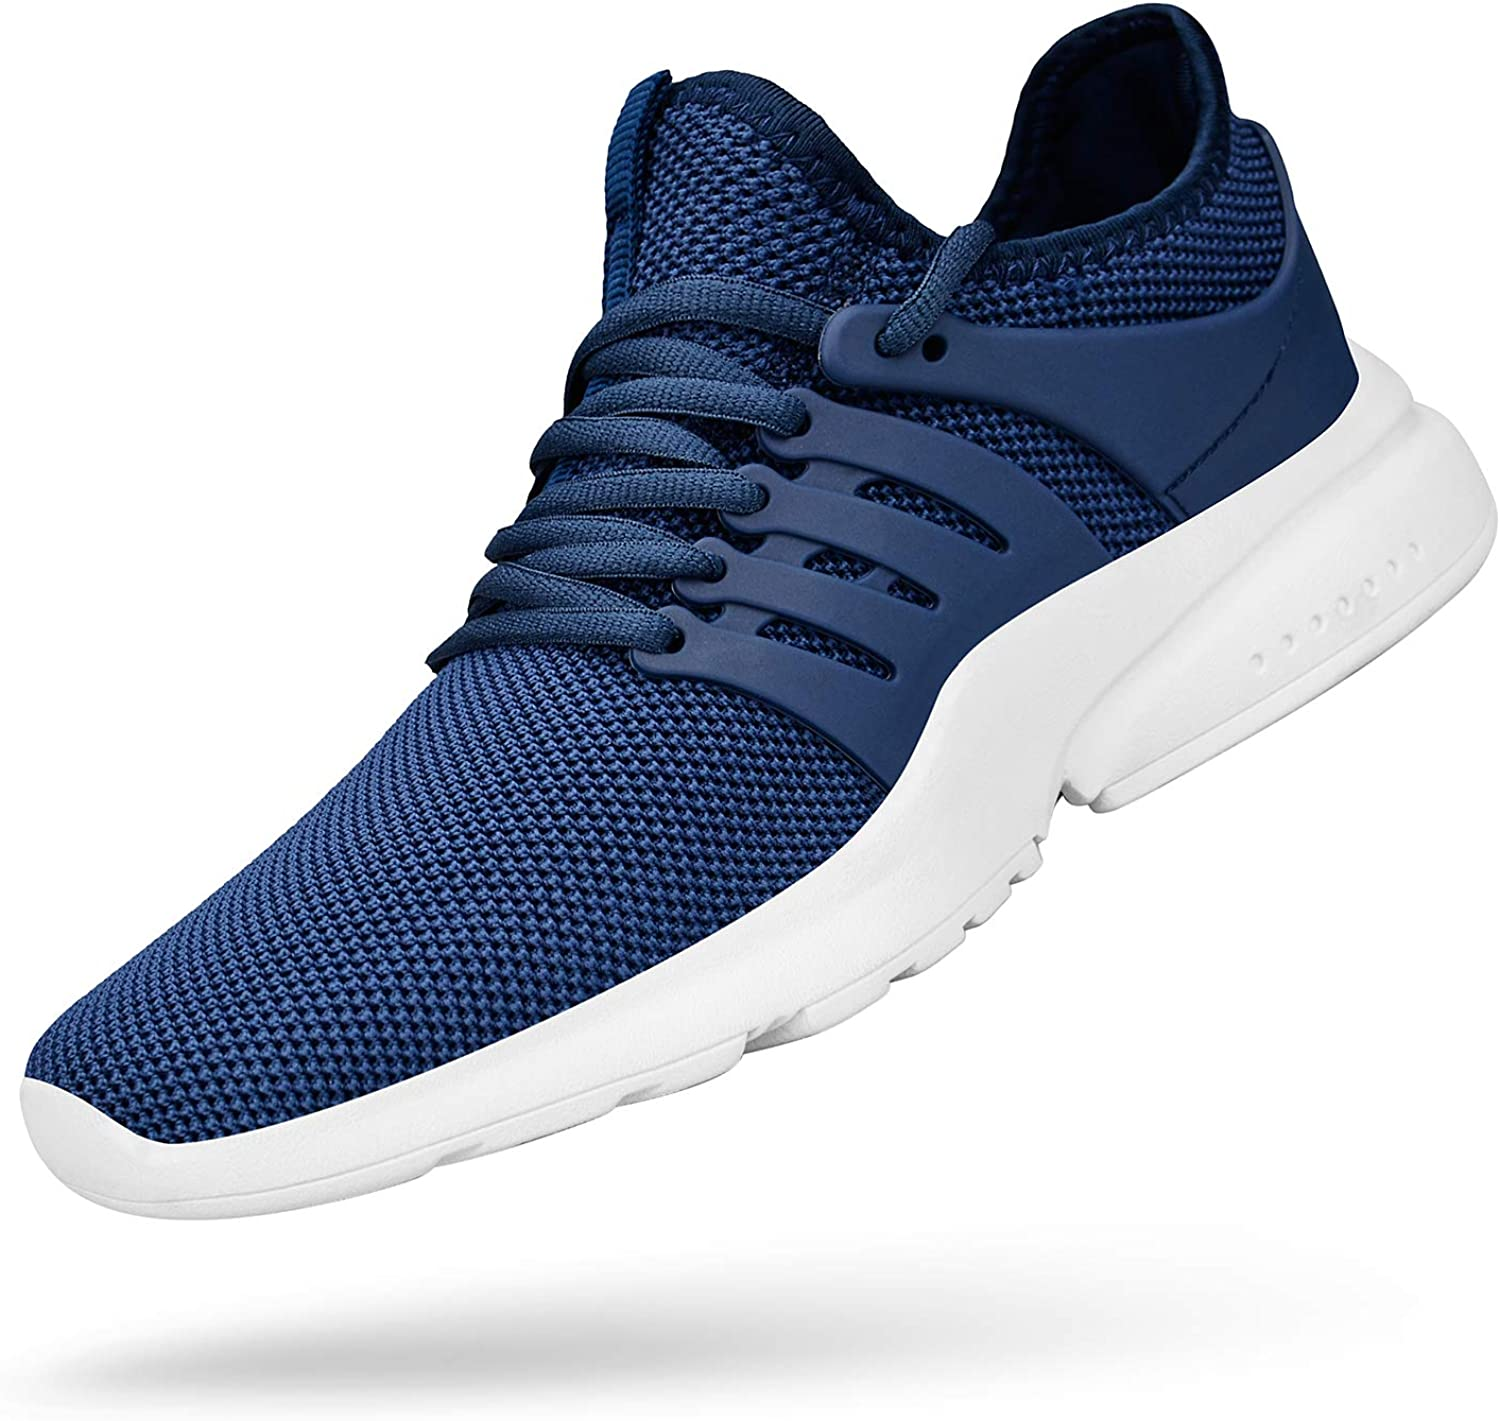 QANSI Mens Tennis Sneakers Non Slip Breathable Comfortable Athletic Sports Running Shoes Slip on Workout Training Gym Shoes Blue//White 11